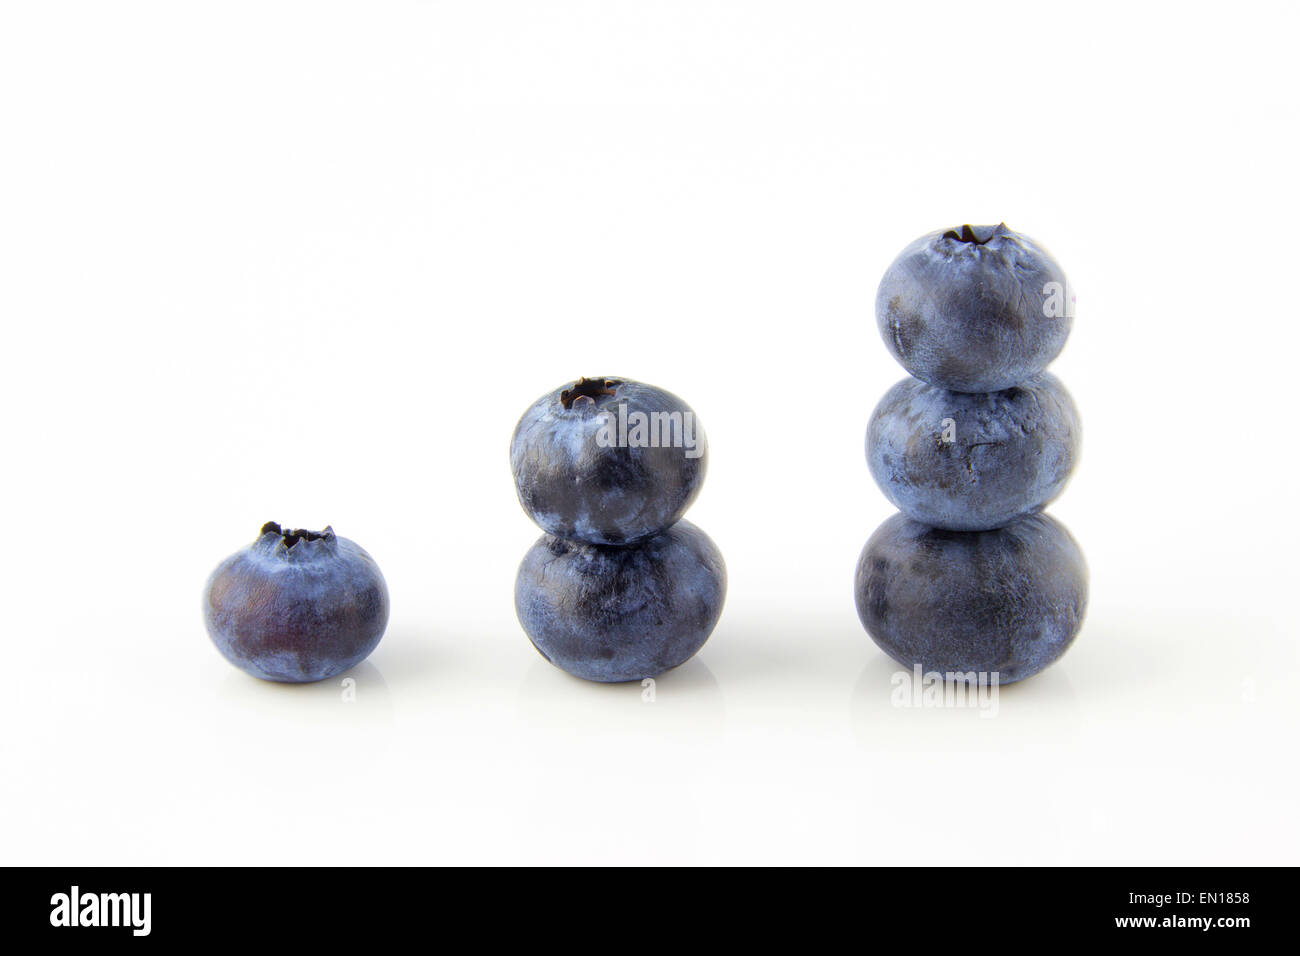 Growing up concept made of fresh blueberries - Stock Image